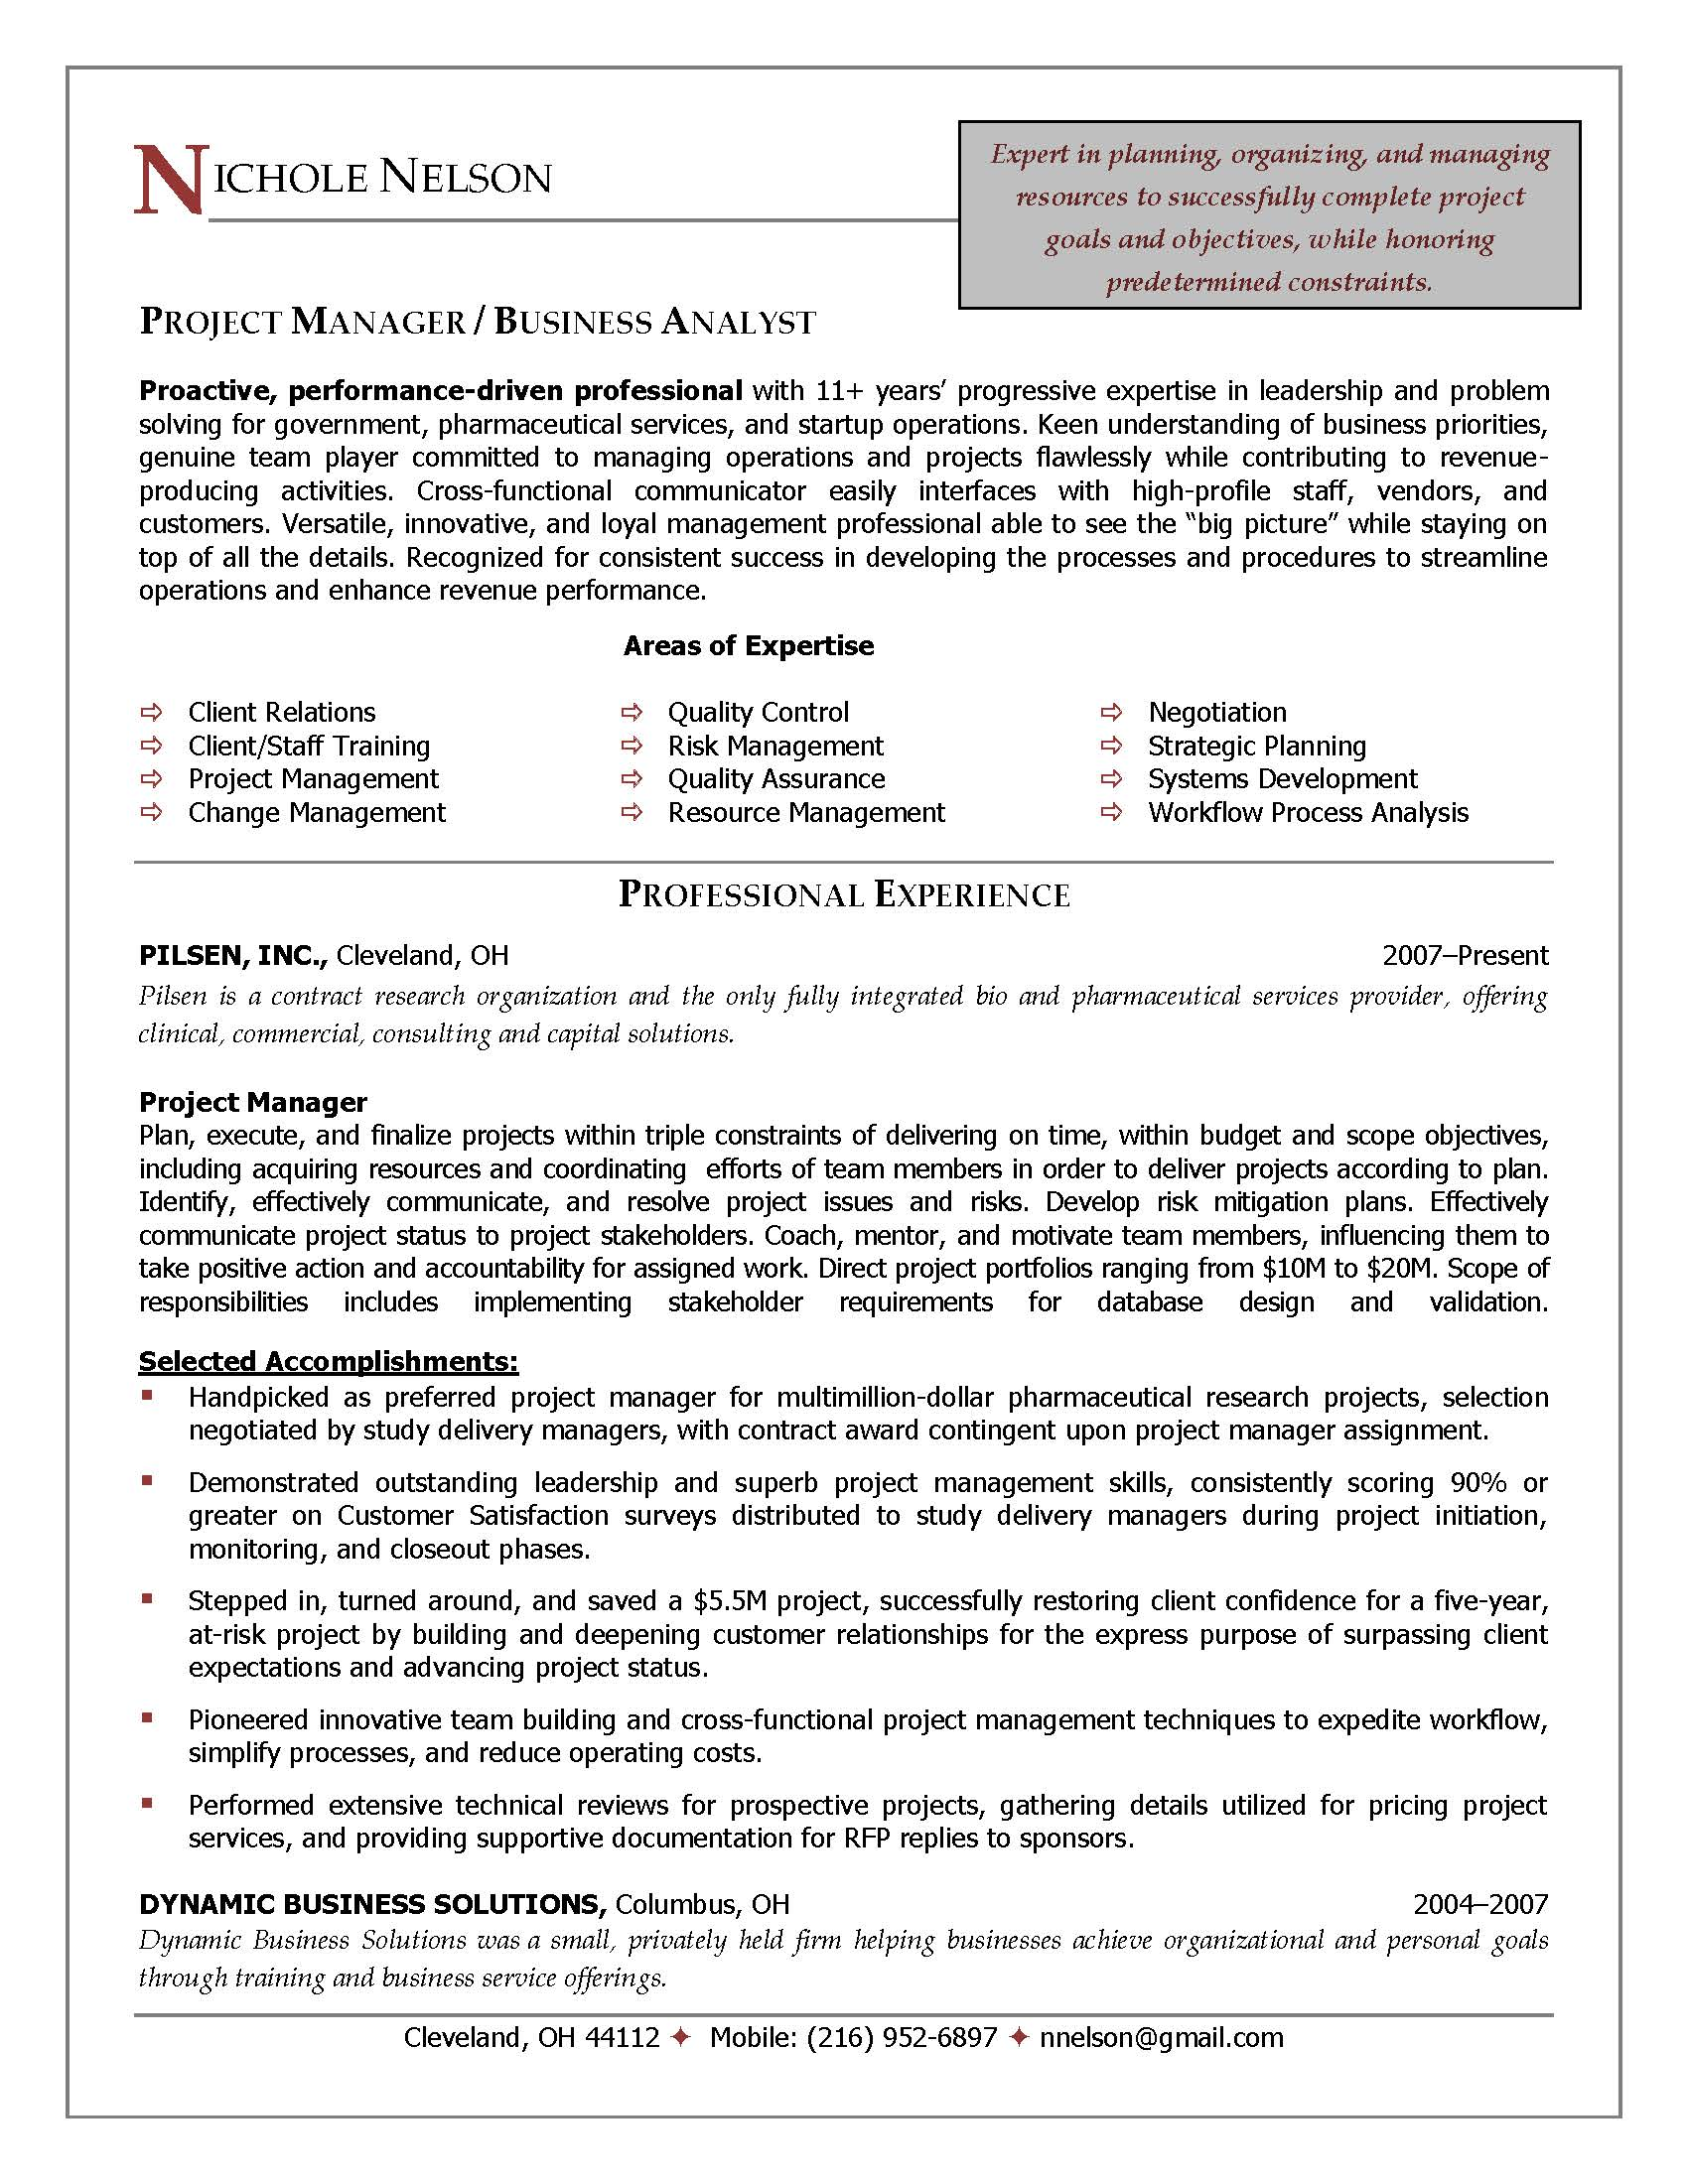 Project Manager Resume Sample, Provided By Elite Resume Writing Services  Marketing Sample Resume